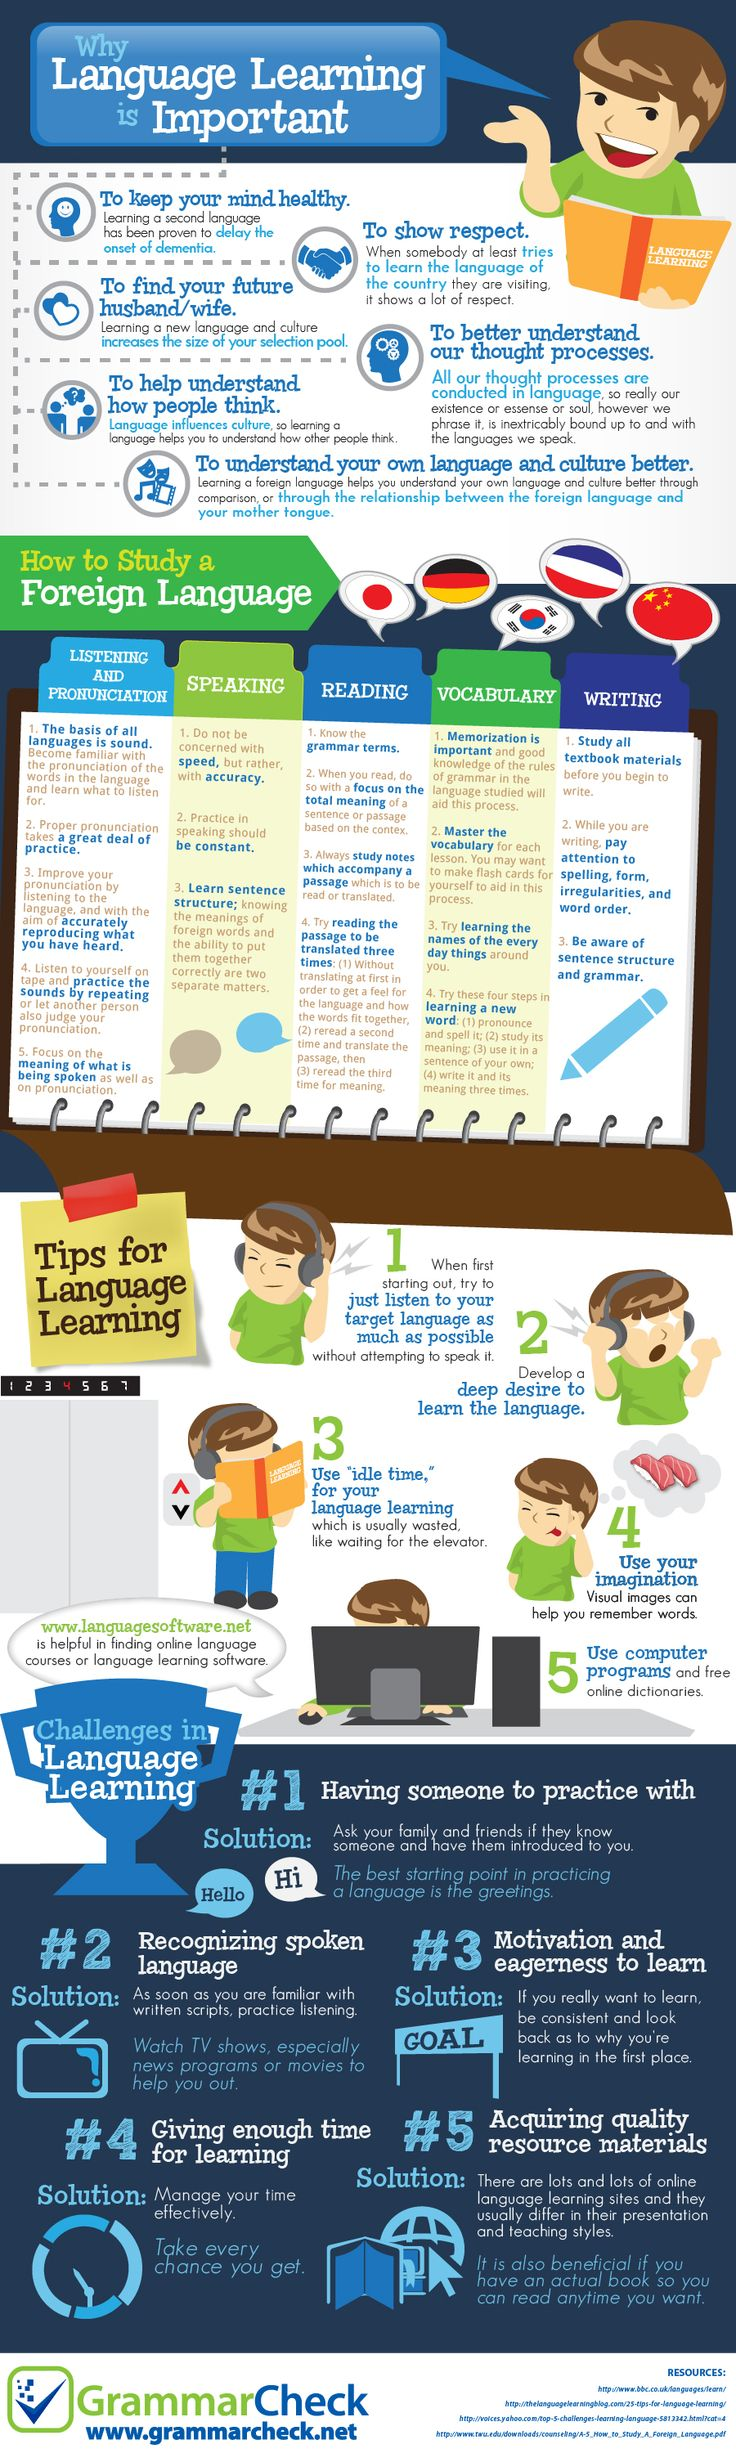 Why Language Learning is Important Infographic - http://elearninginfographics.com/why-language-learning-is-important-infographic/